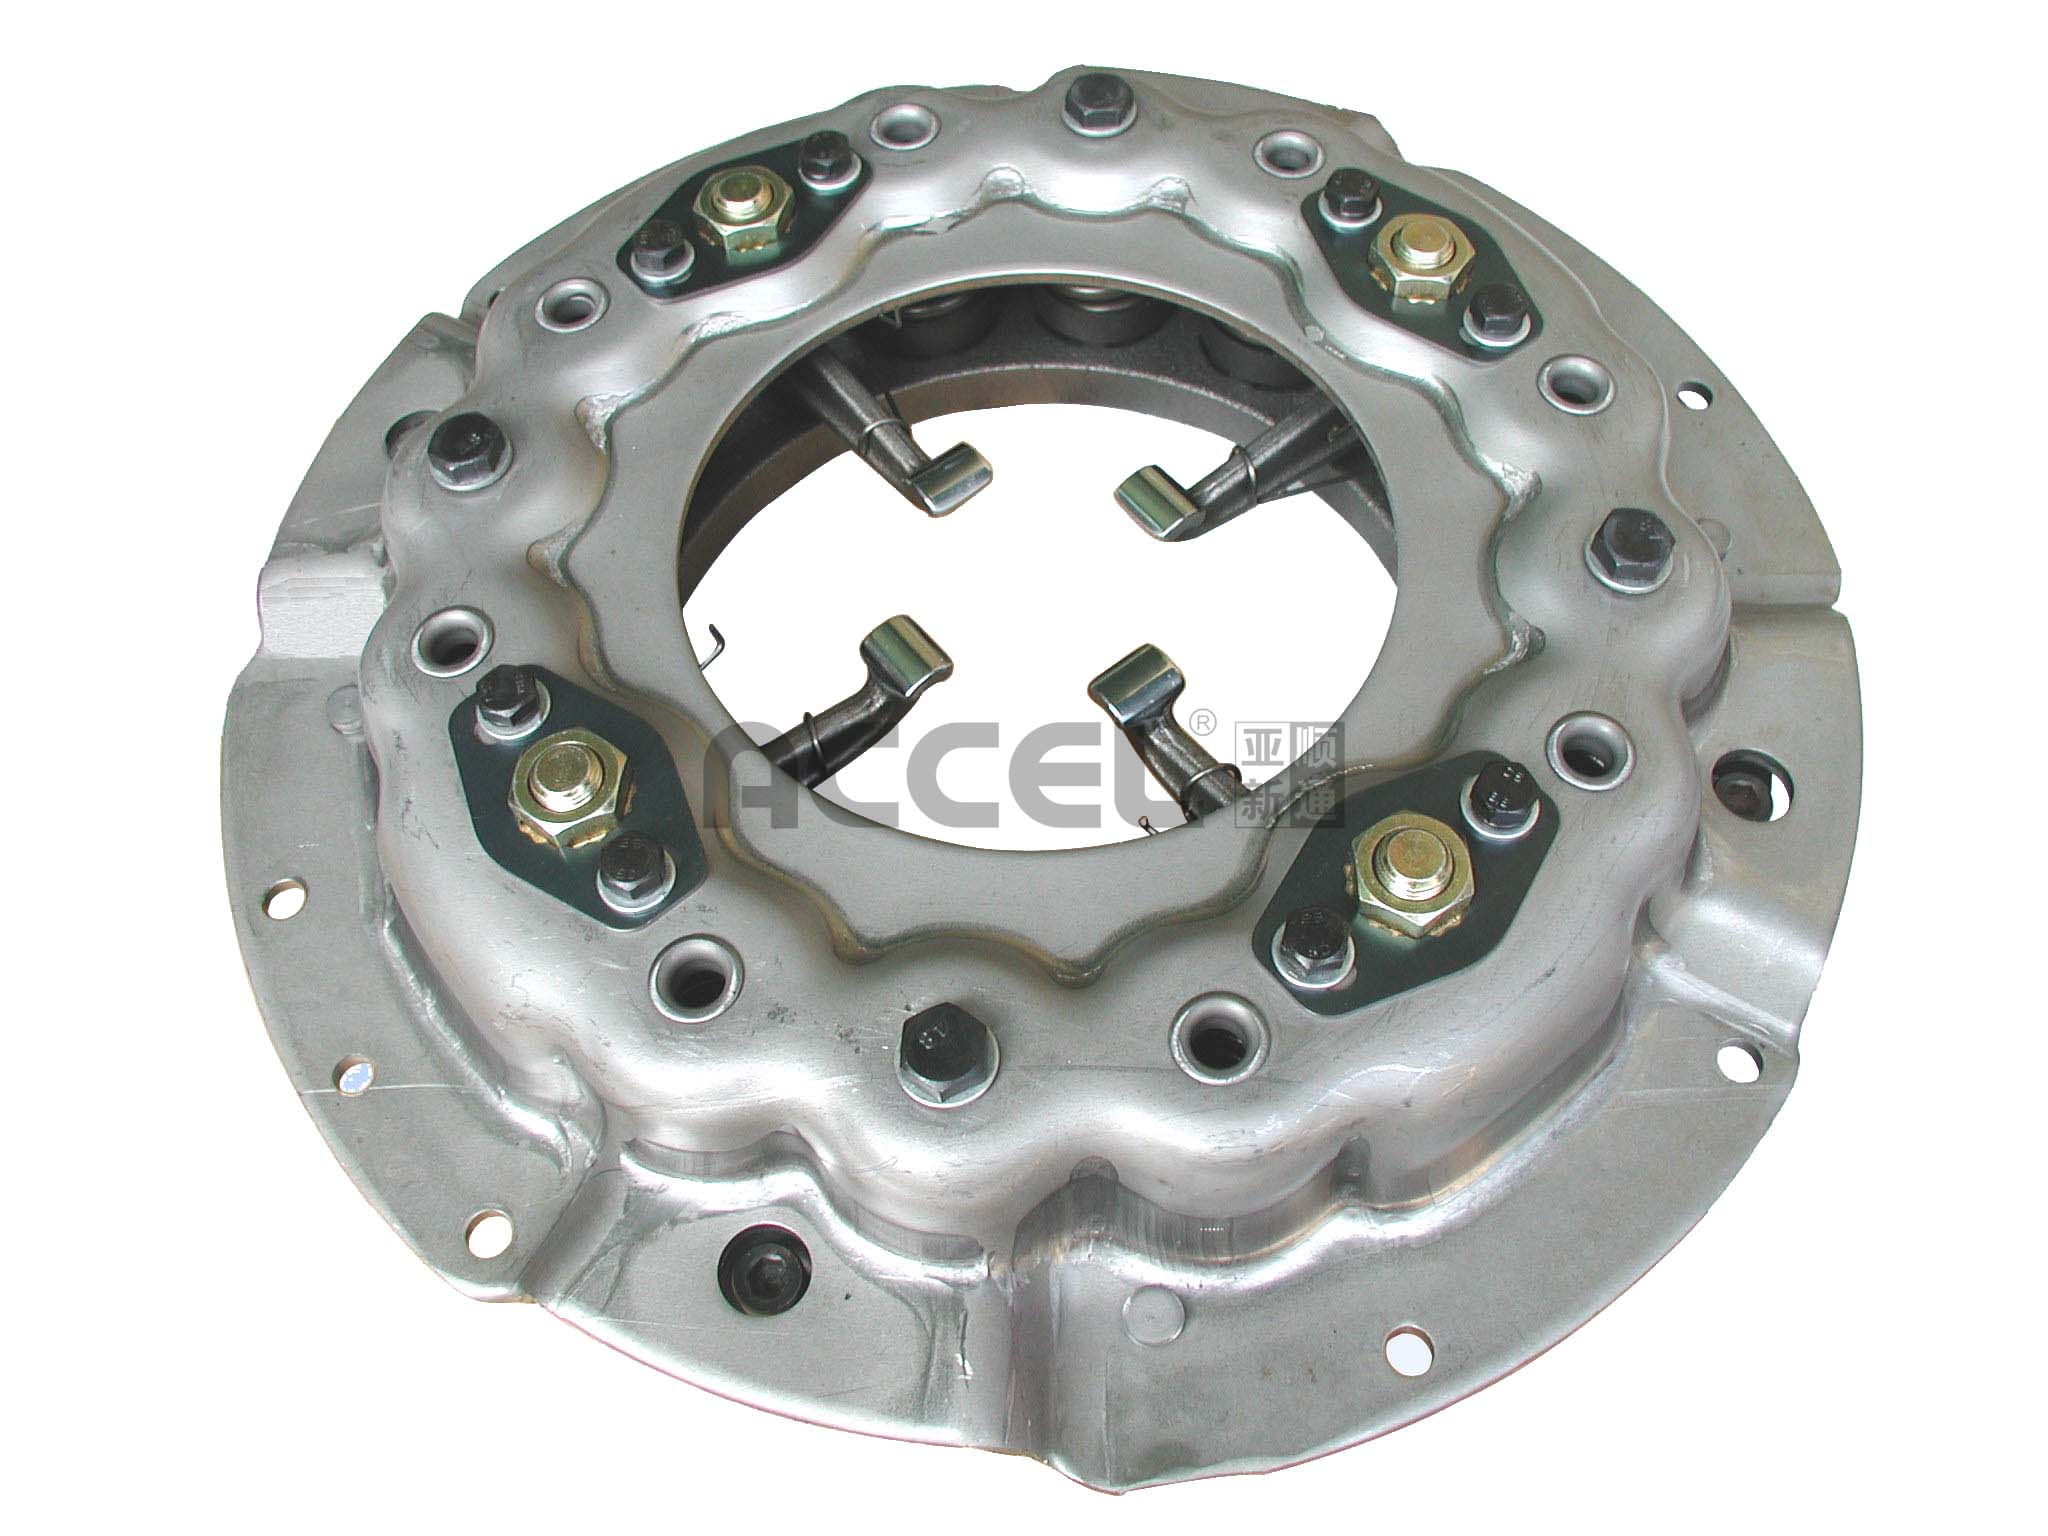 Clutch Cover/OE:SCDW-139/380*240*405/CDW-001/DAEWOO/LY144/41200-92302/96203875